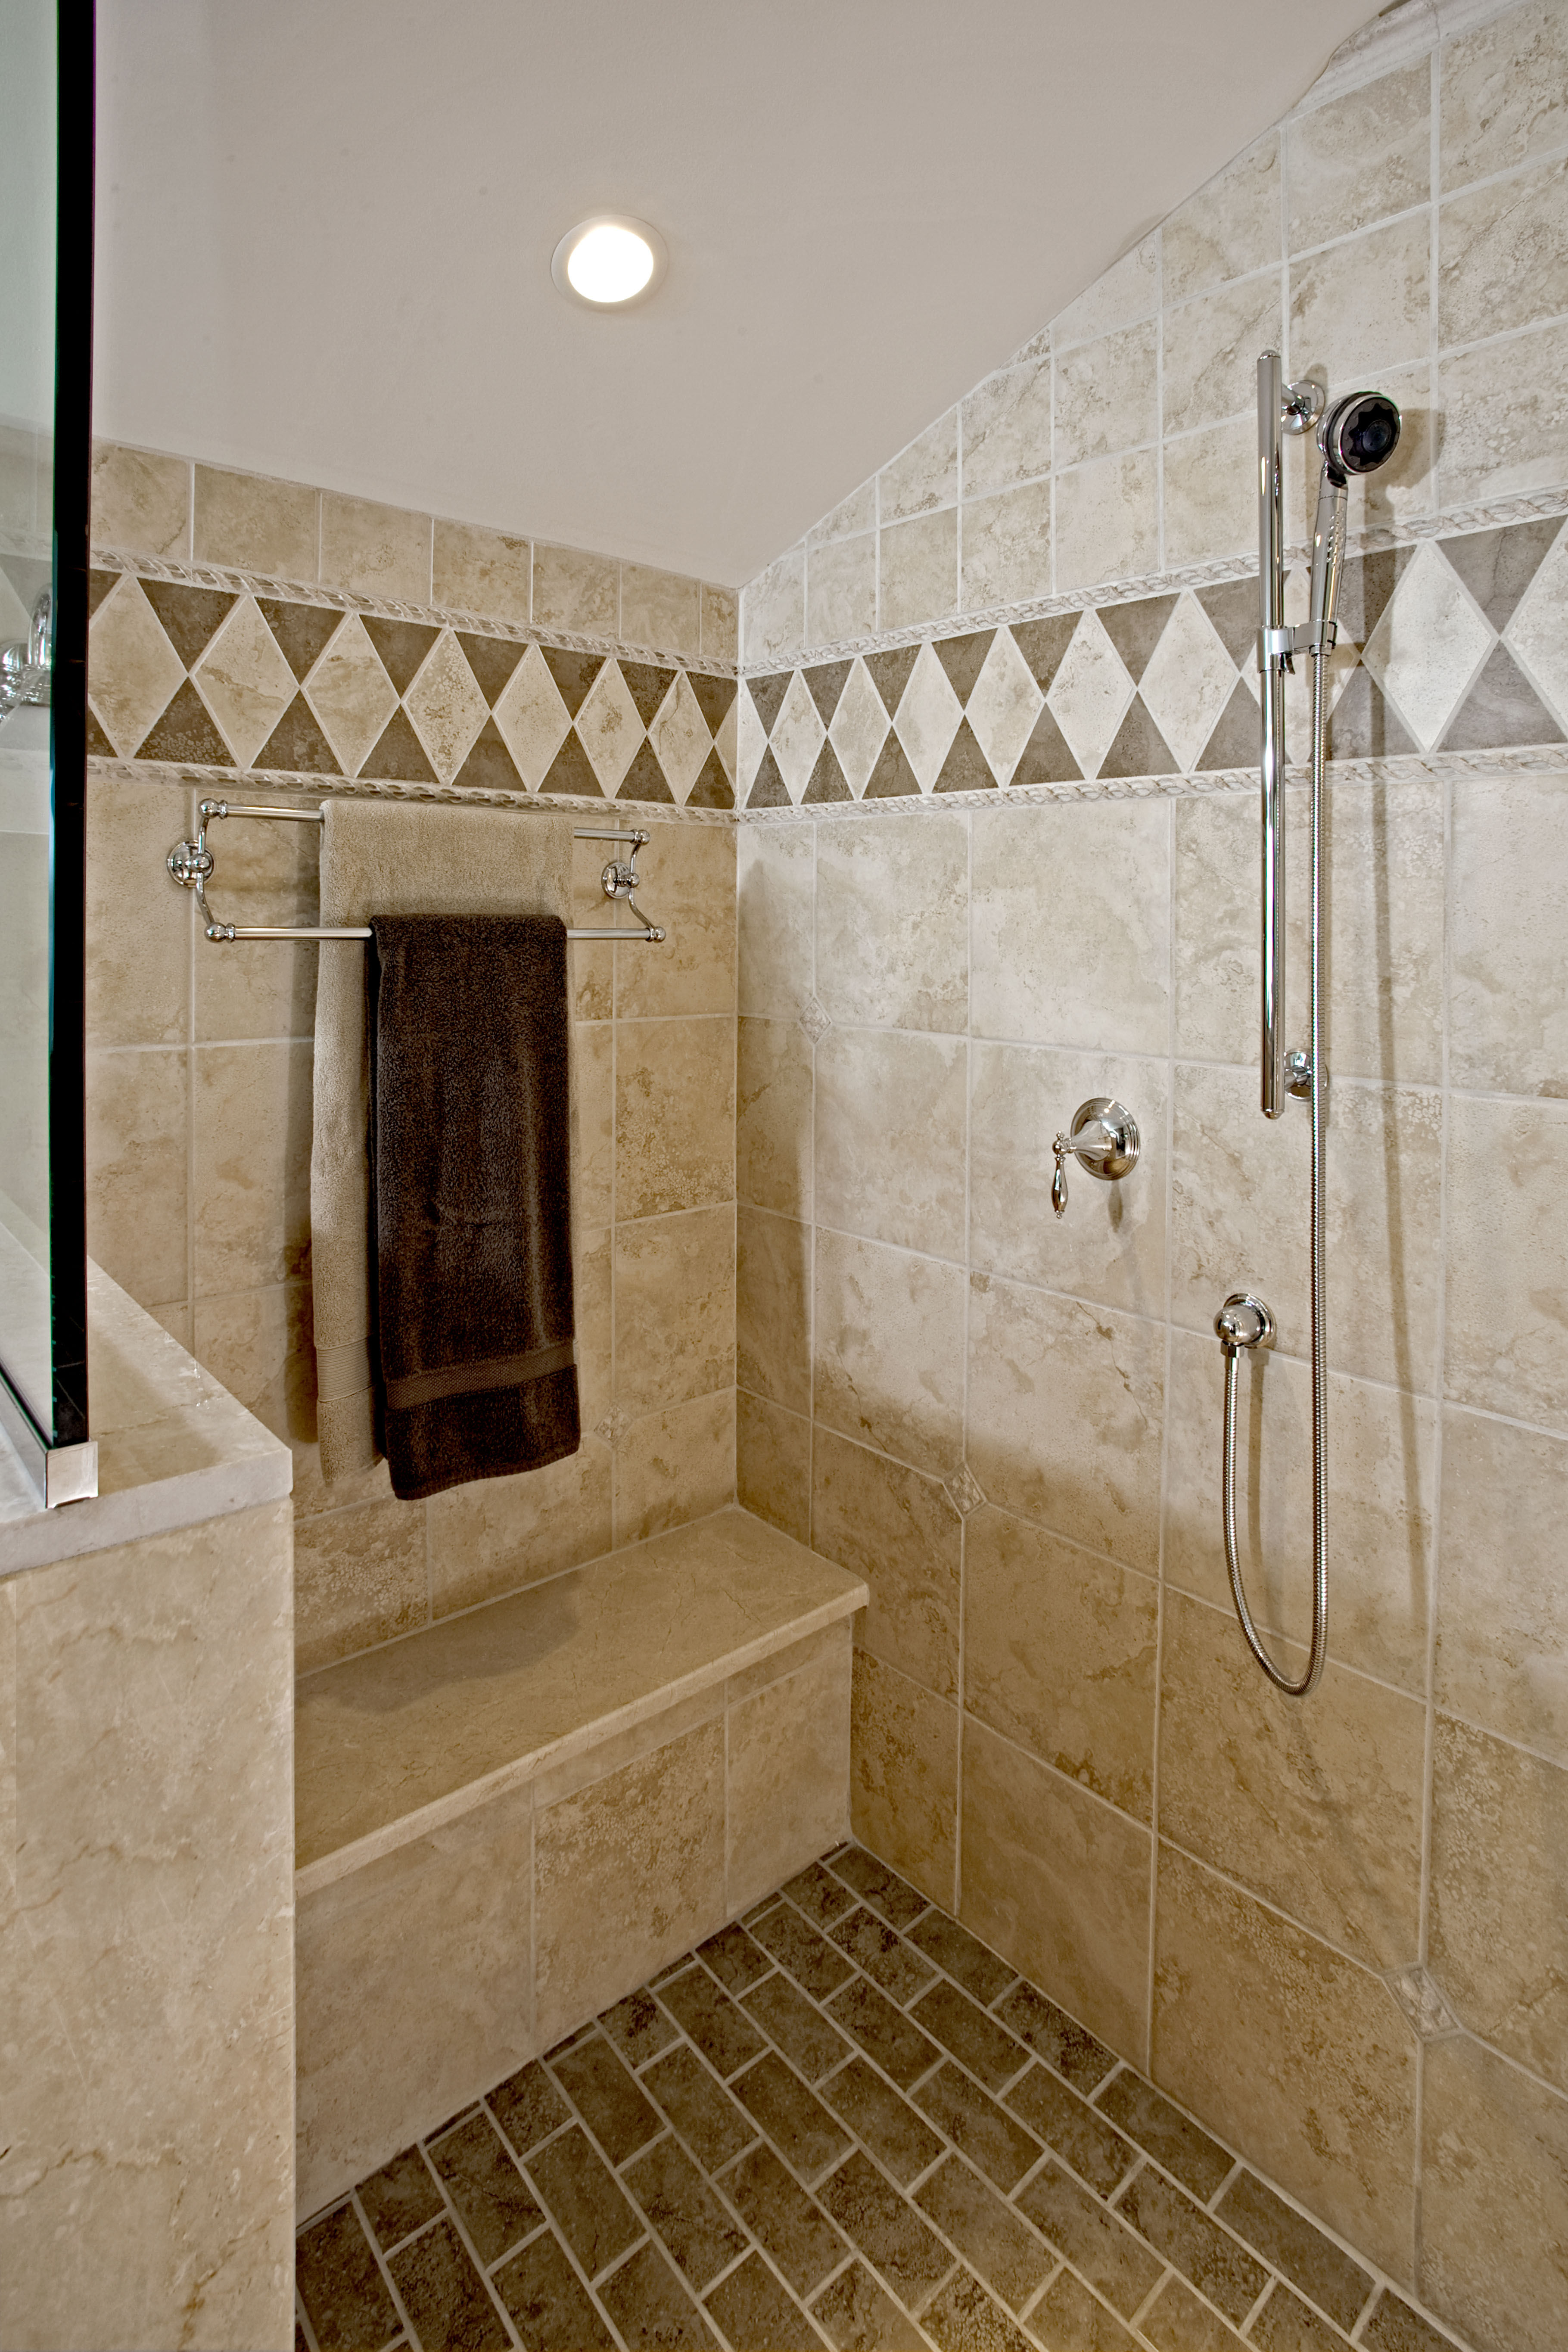 traditional shower designs guest bathroom the shower in this traditional design hatboro pa is fit for two with secondary handheld next to the bench and towel rack traditional bathrooms designs remodeling htrenovations